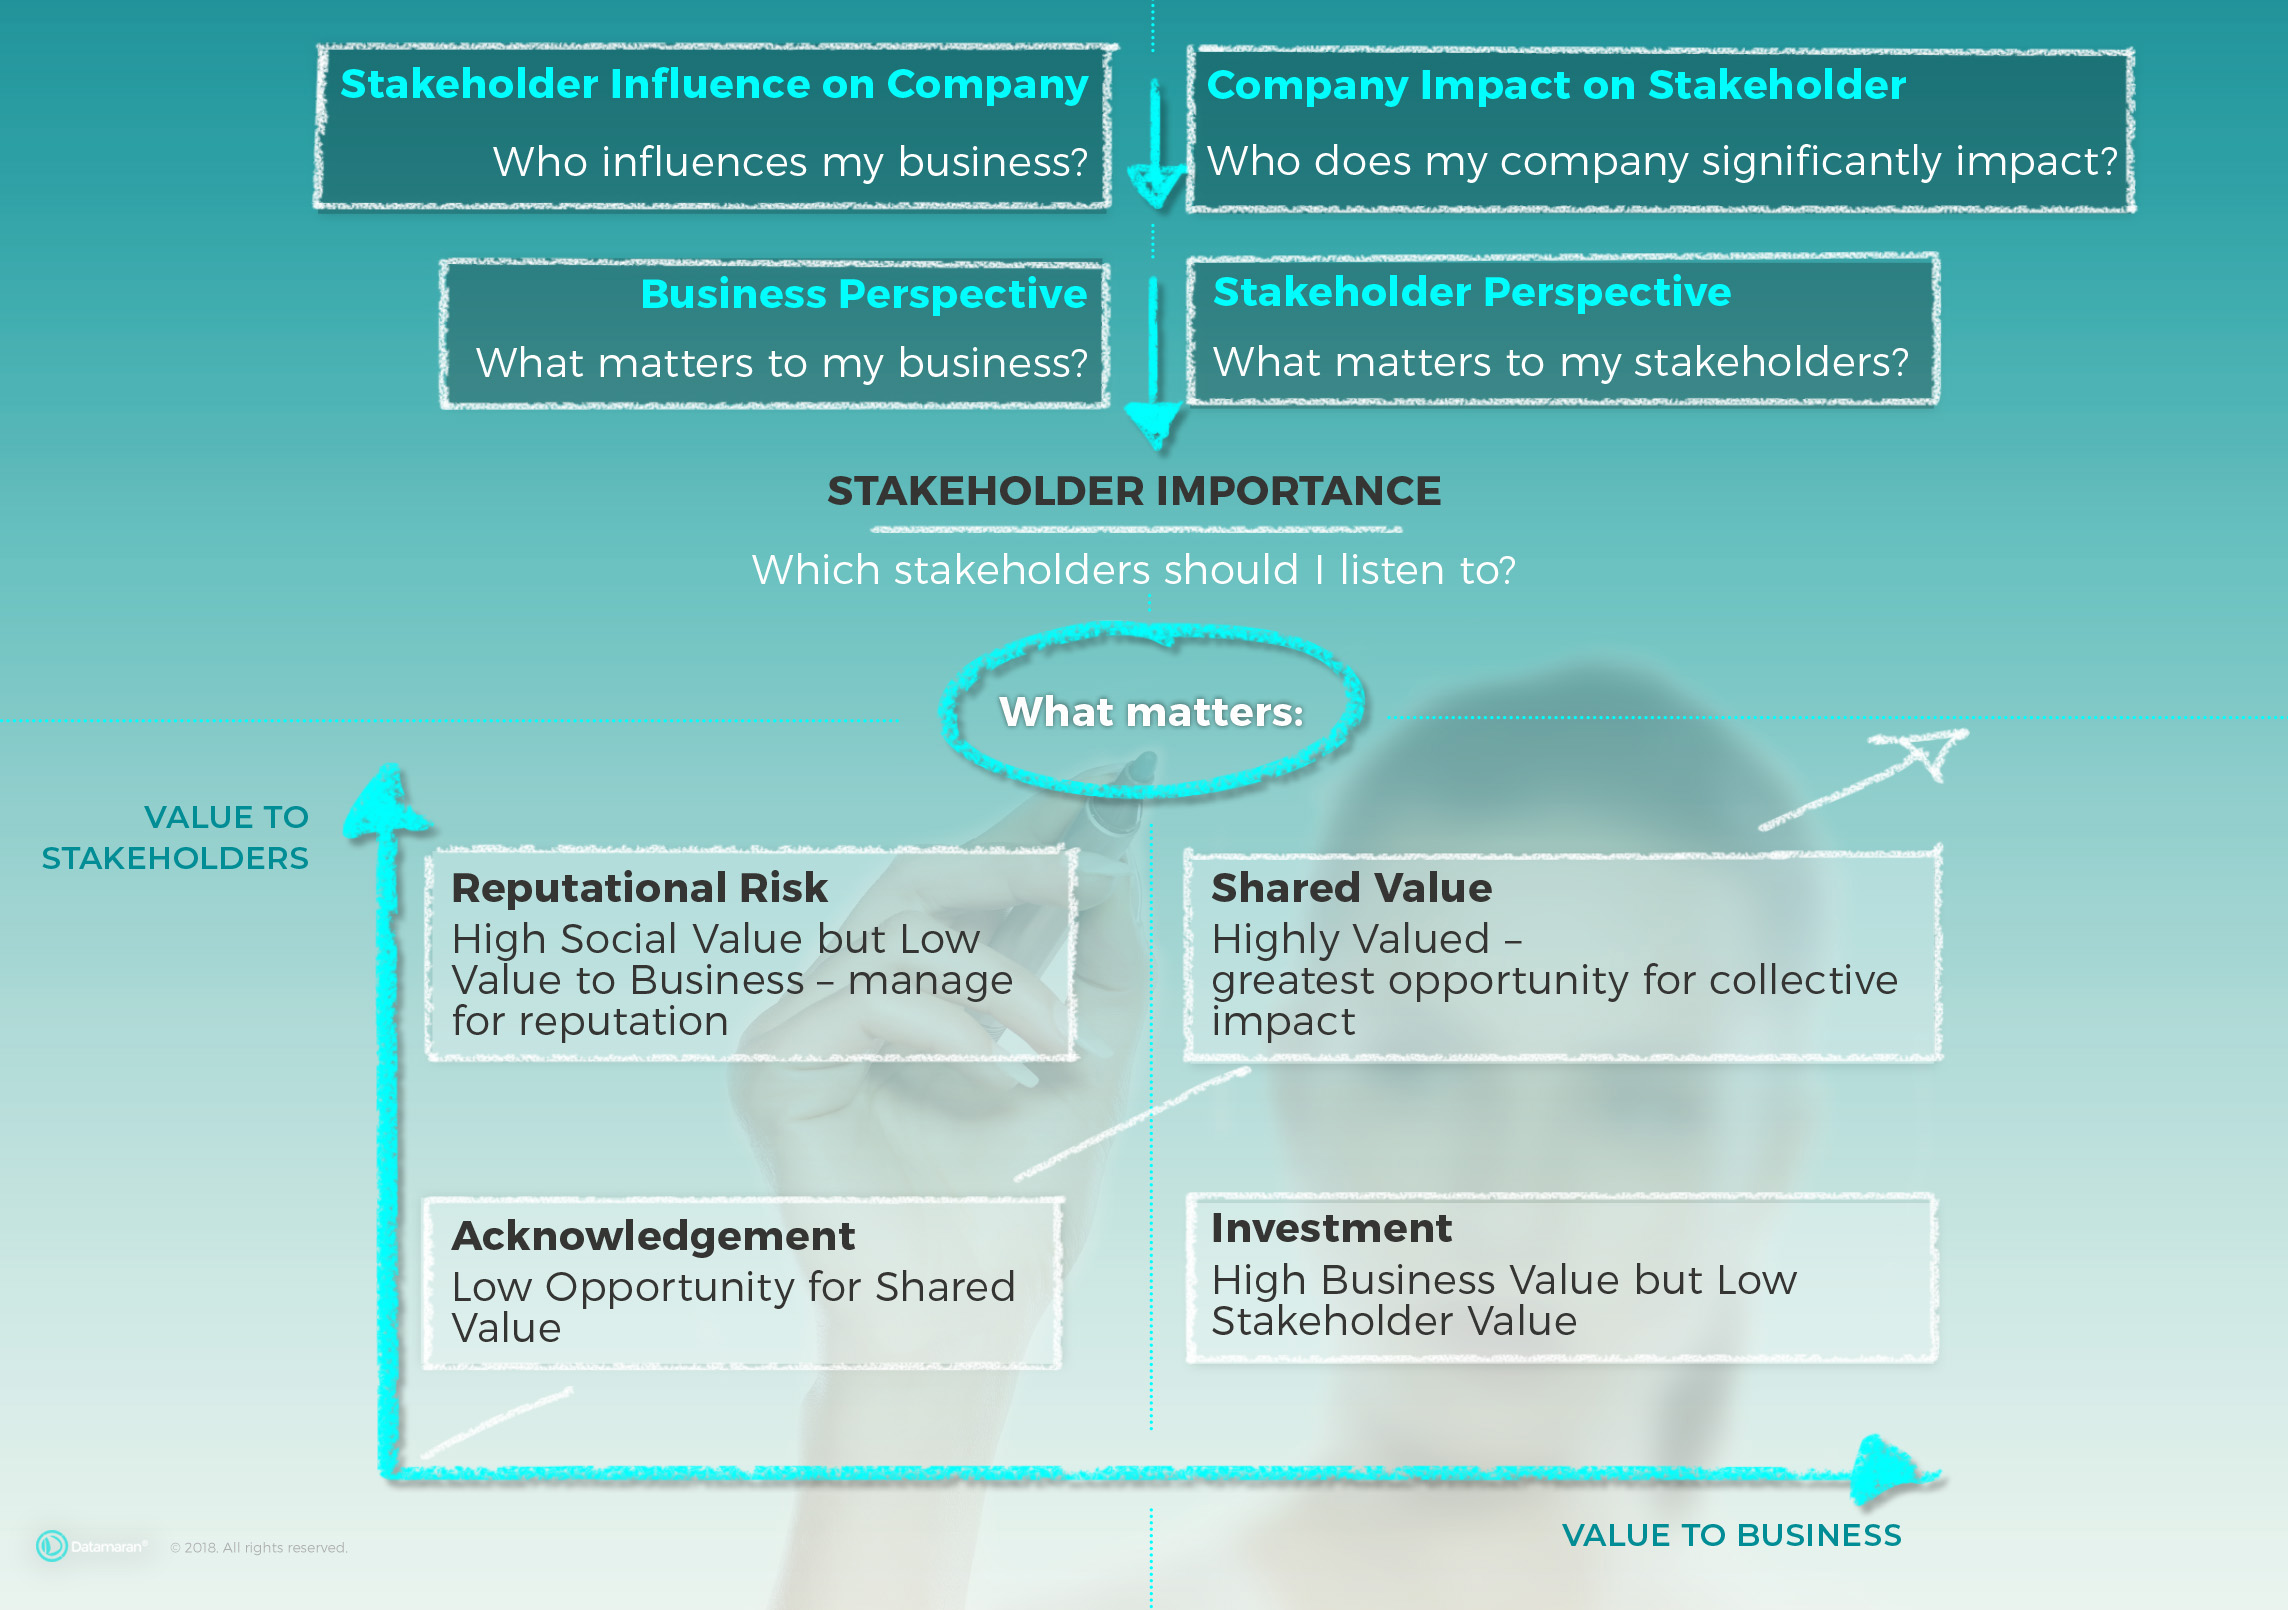 Zurich Insurance Case Study - Get your Stakeholder Voice Heard